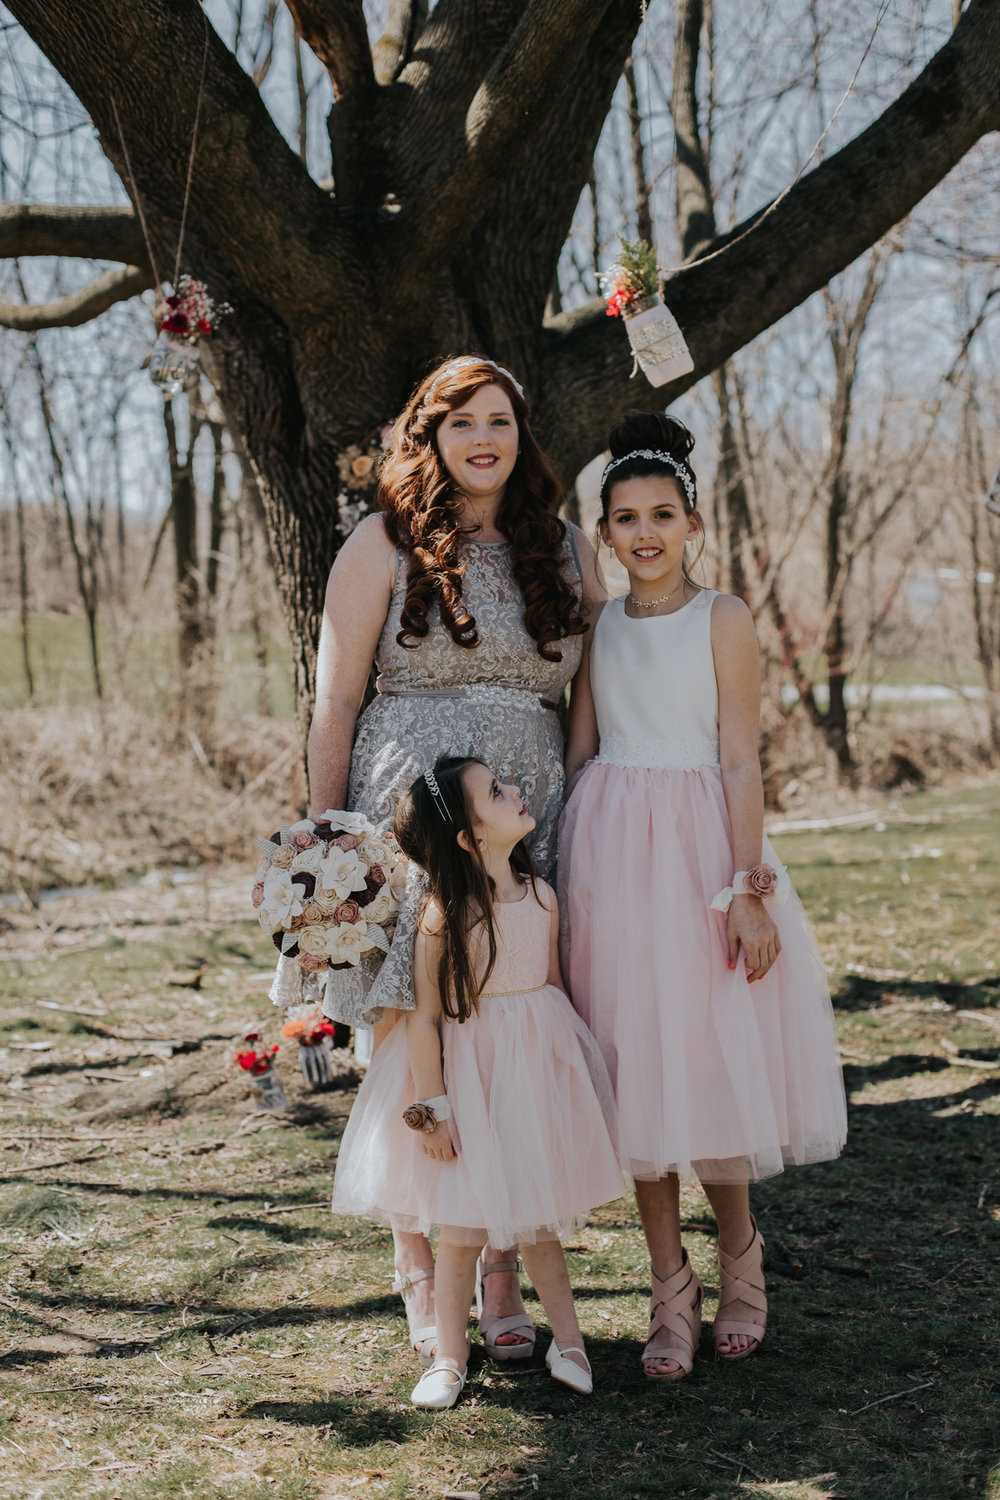 mom-and-daughters-wedding-day-formal-photography